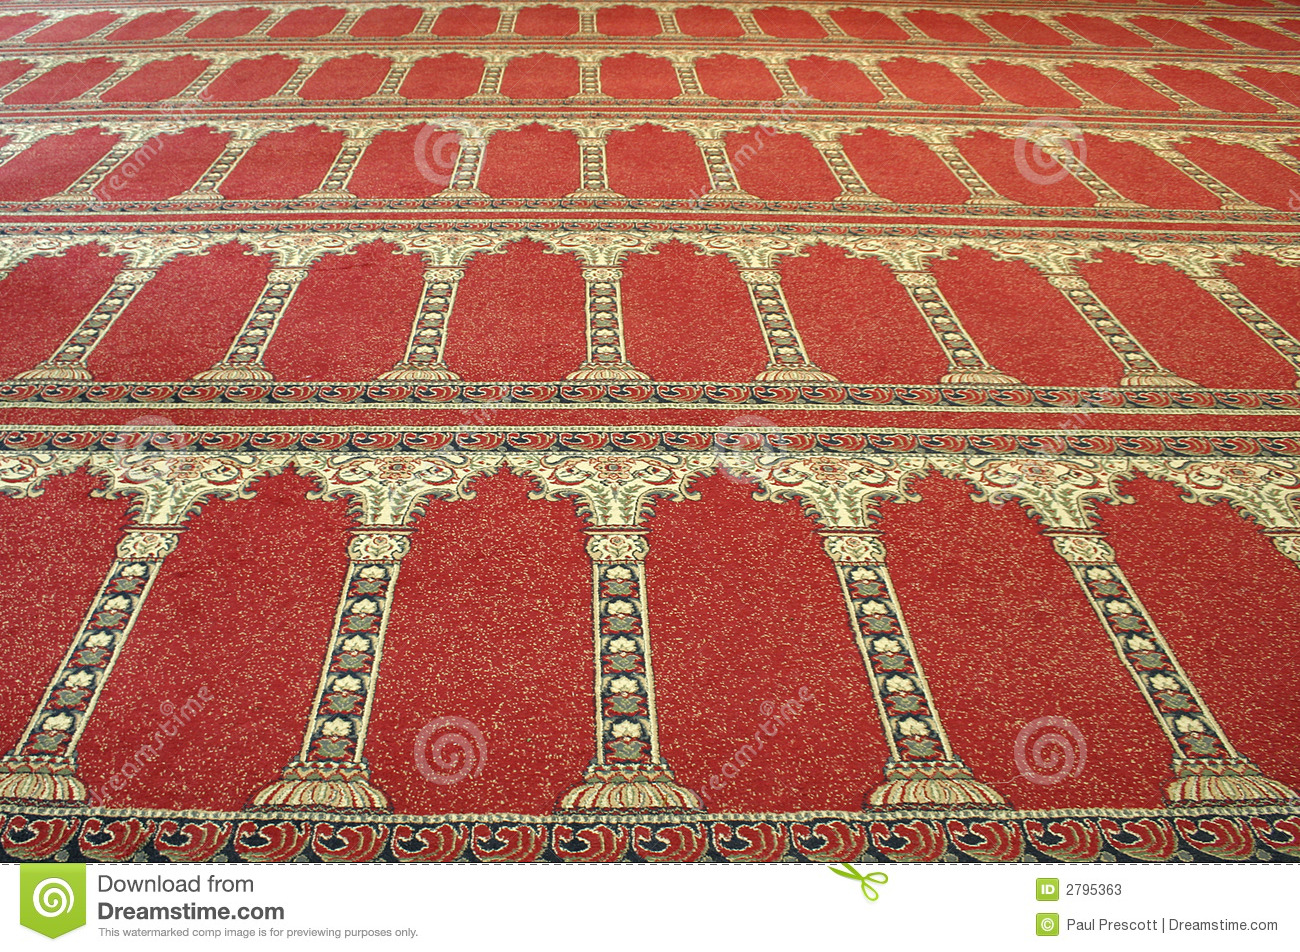 Arabian Floor Carpet Stock Photos - Image: 2795363